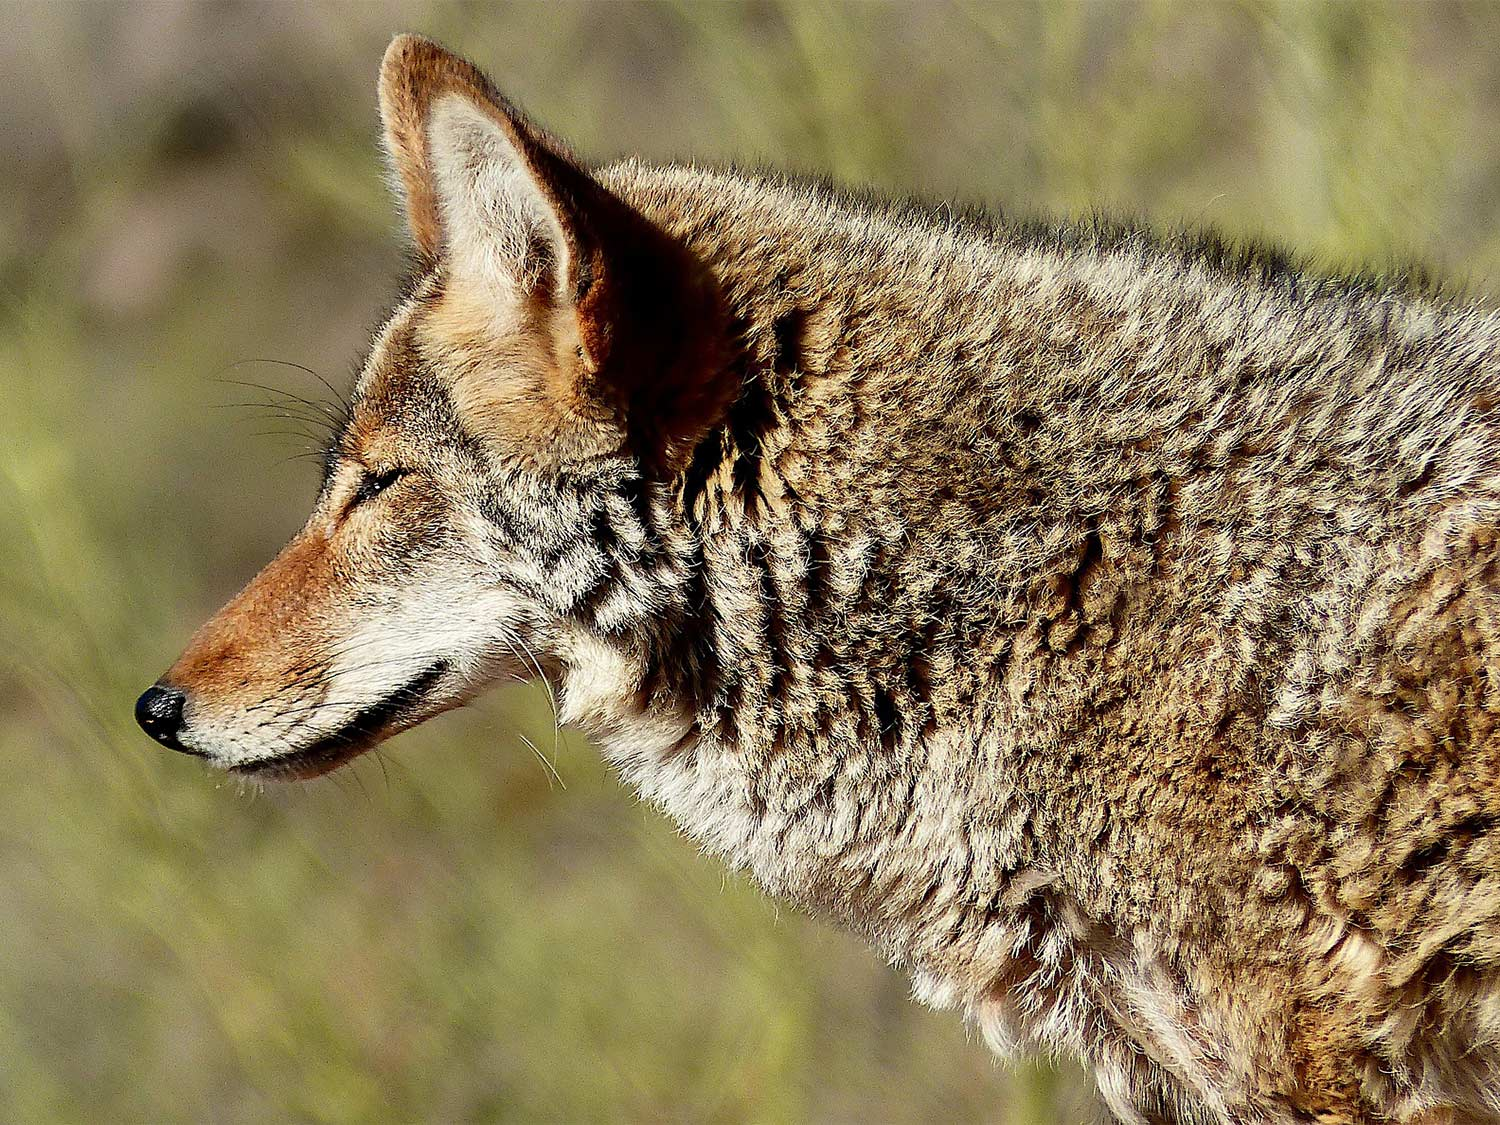 A coyote emerges from the brush.